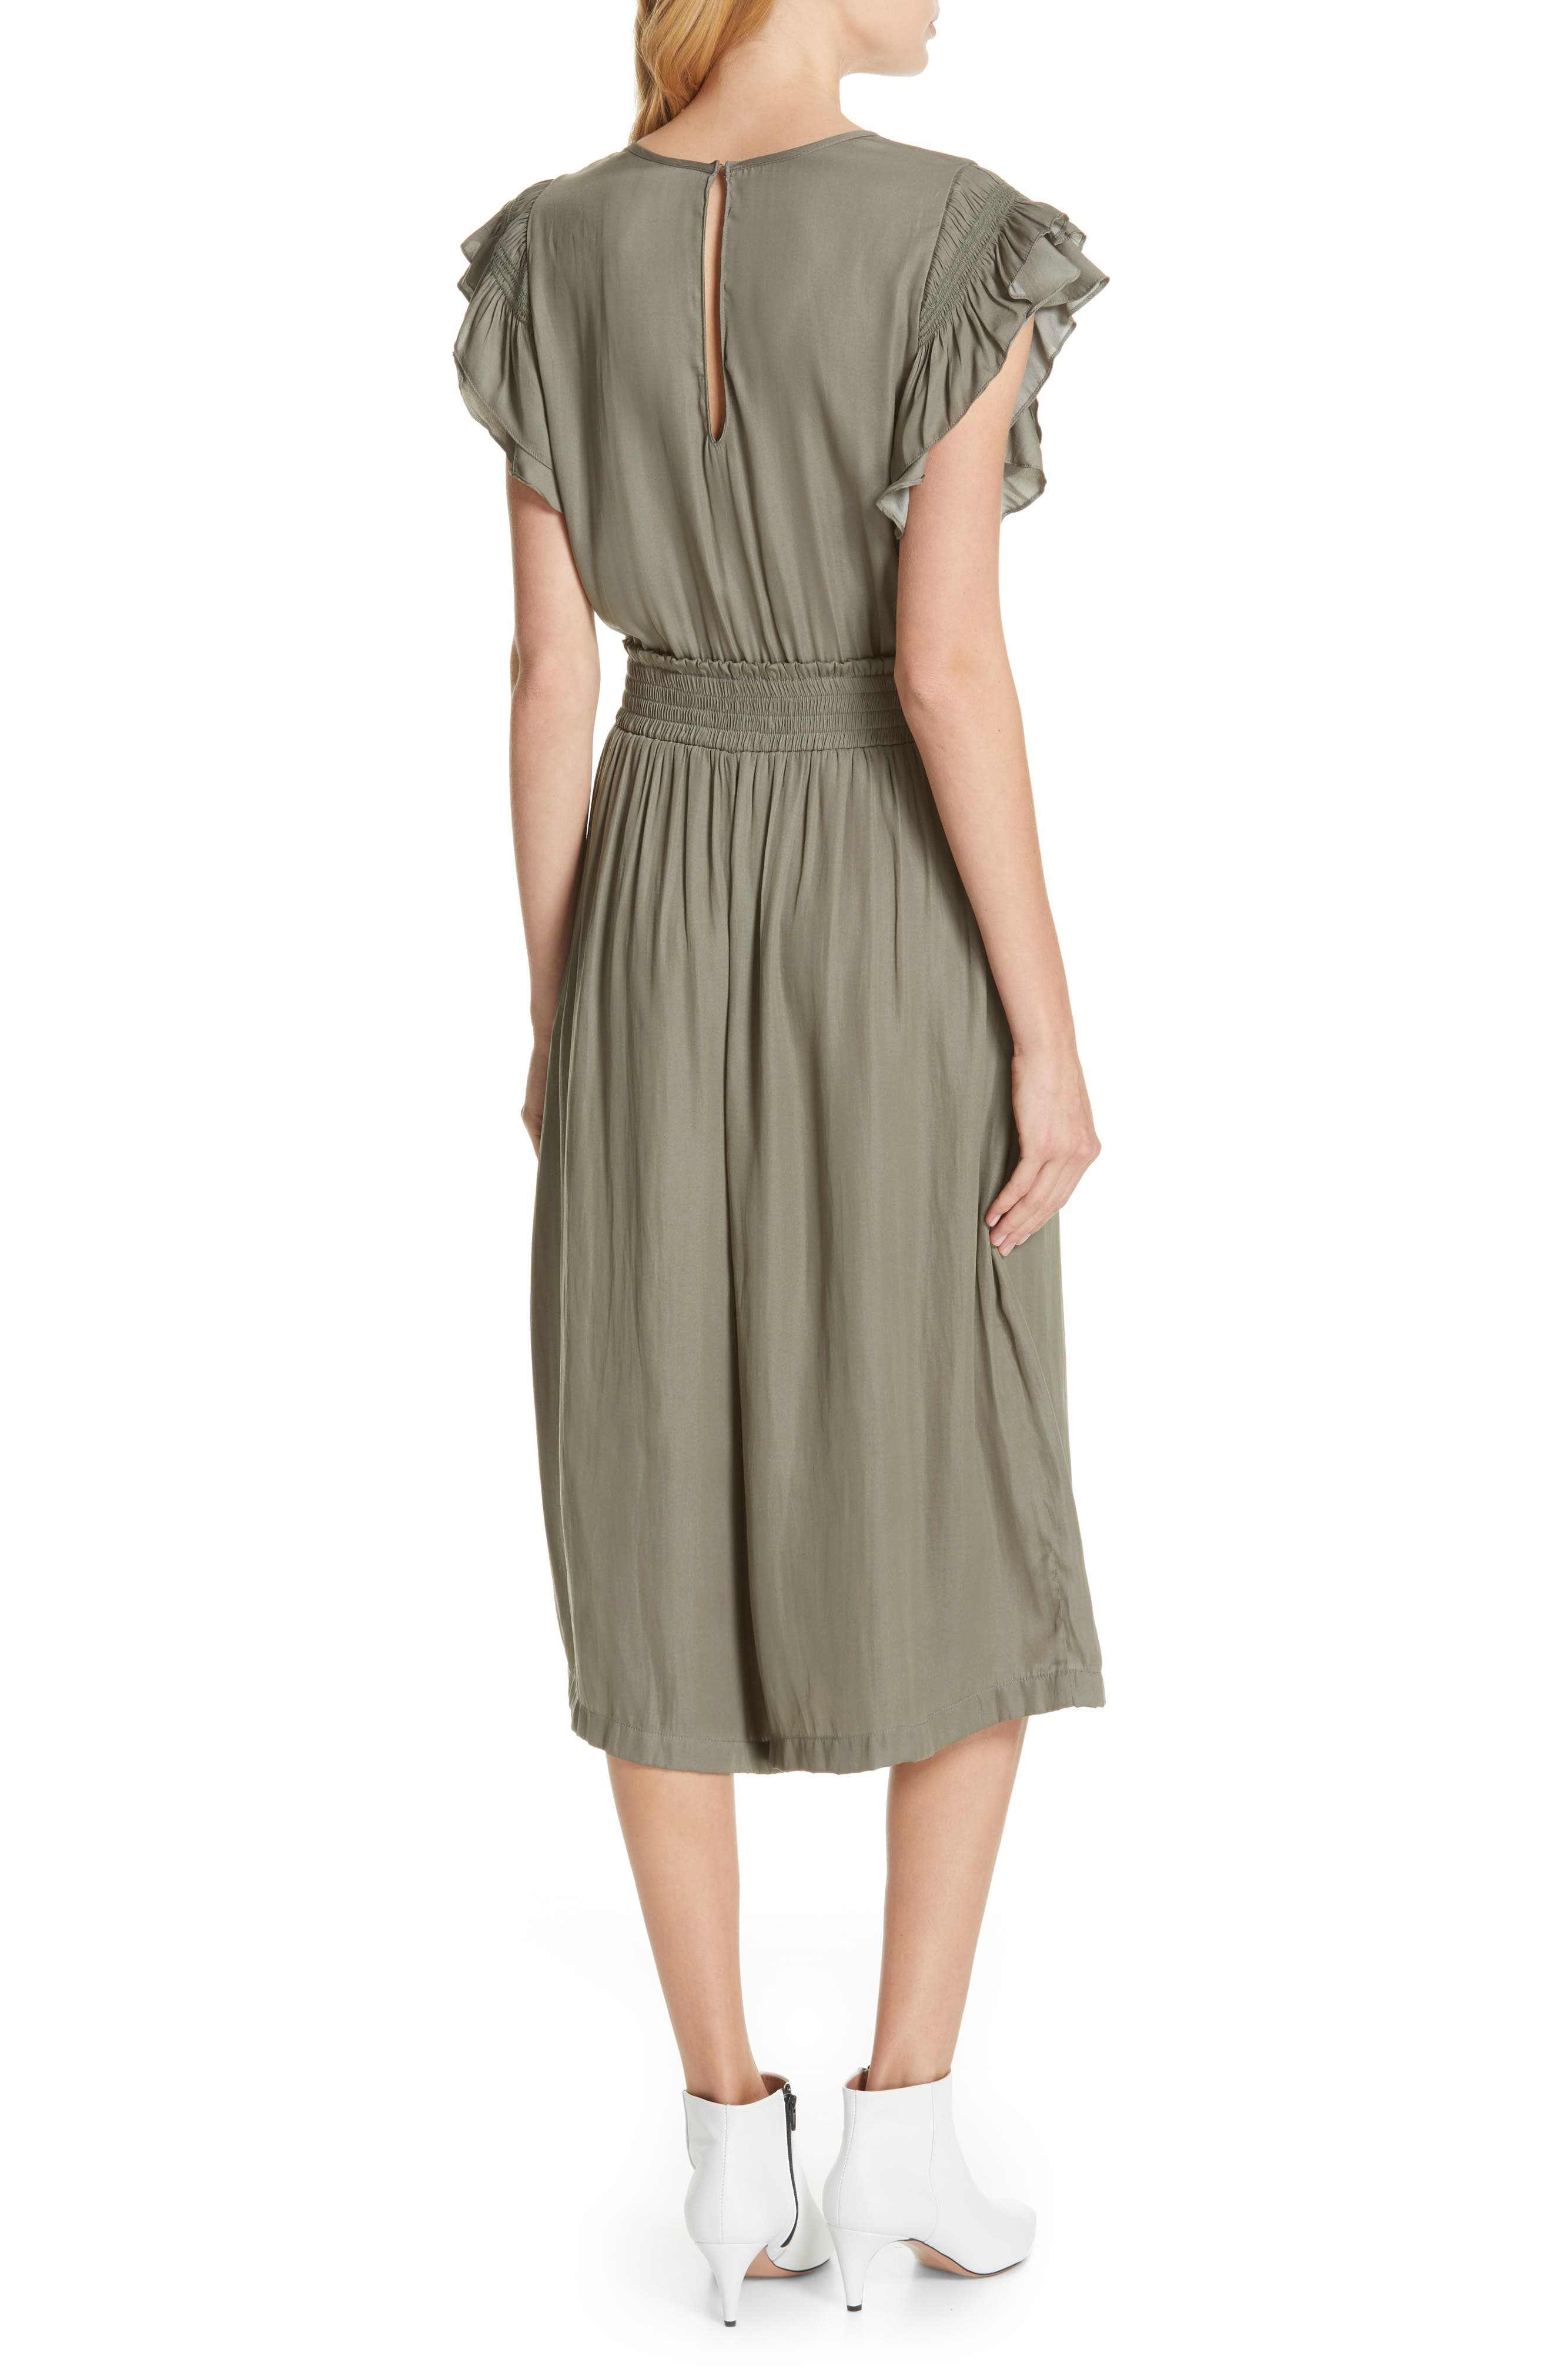 DOLAN, Carrie Pintucked Jumpsuit, Alternate thumbnail 2, color, SAGE